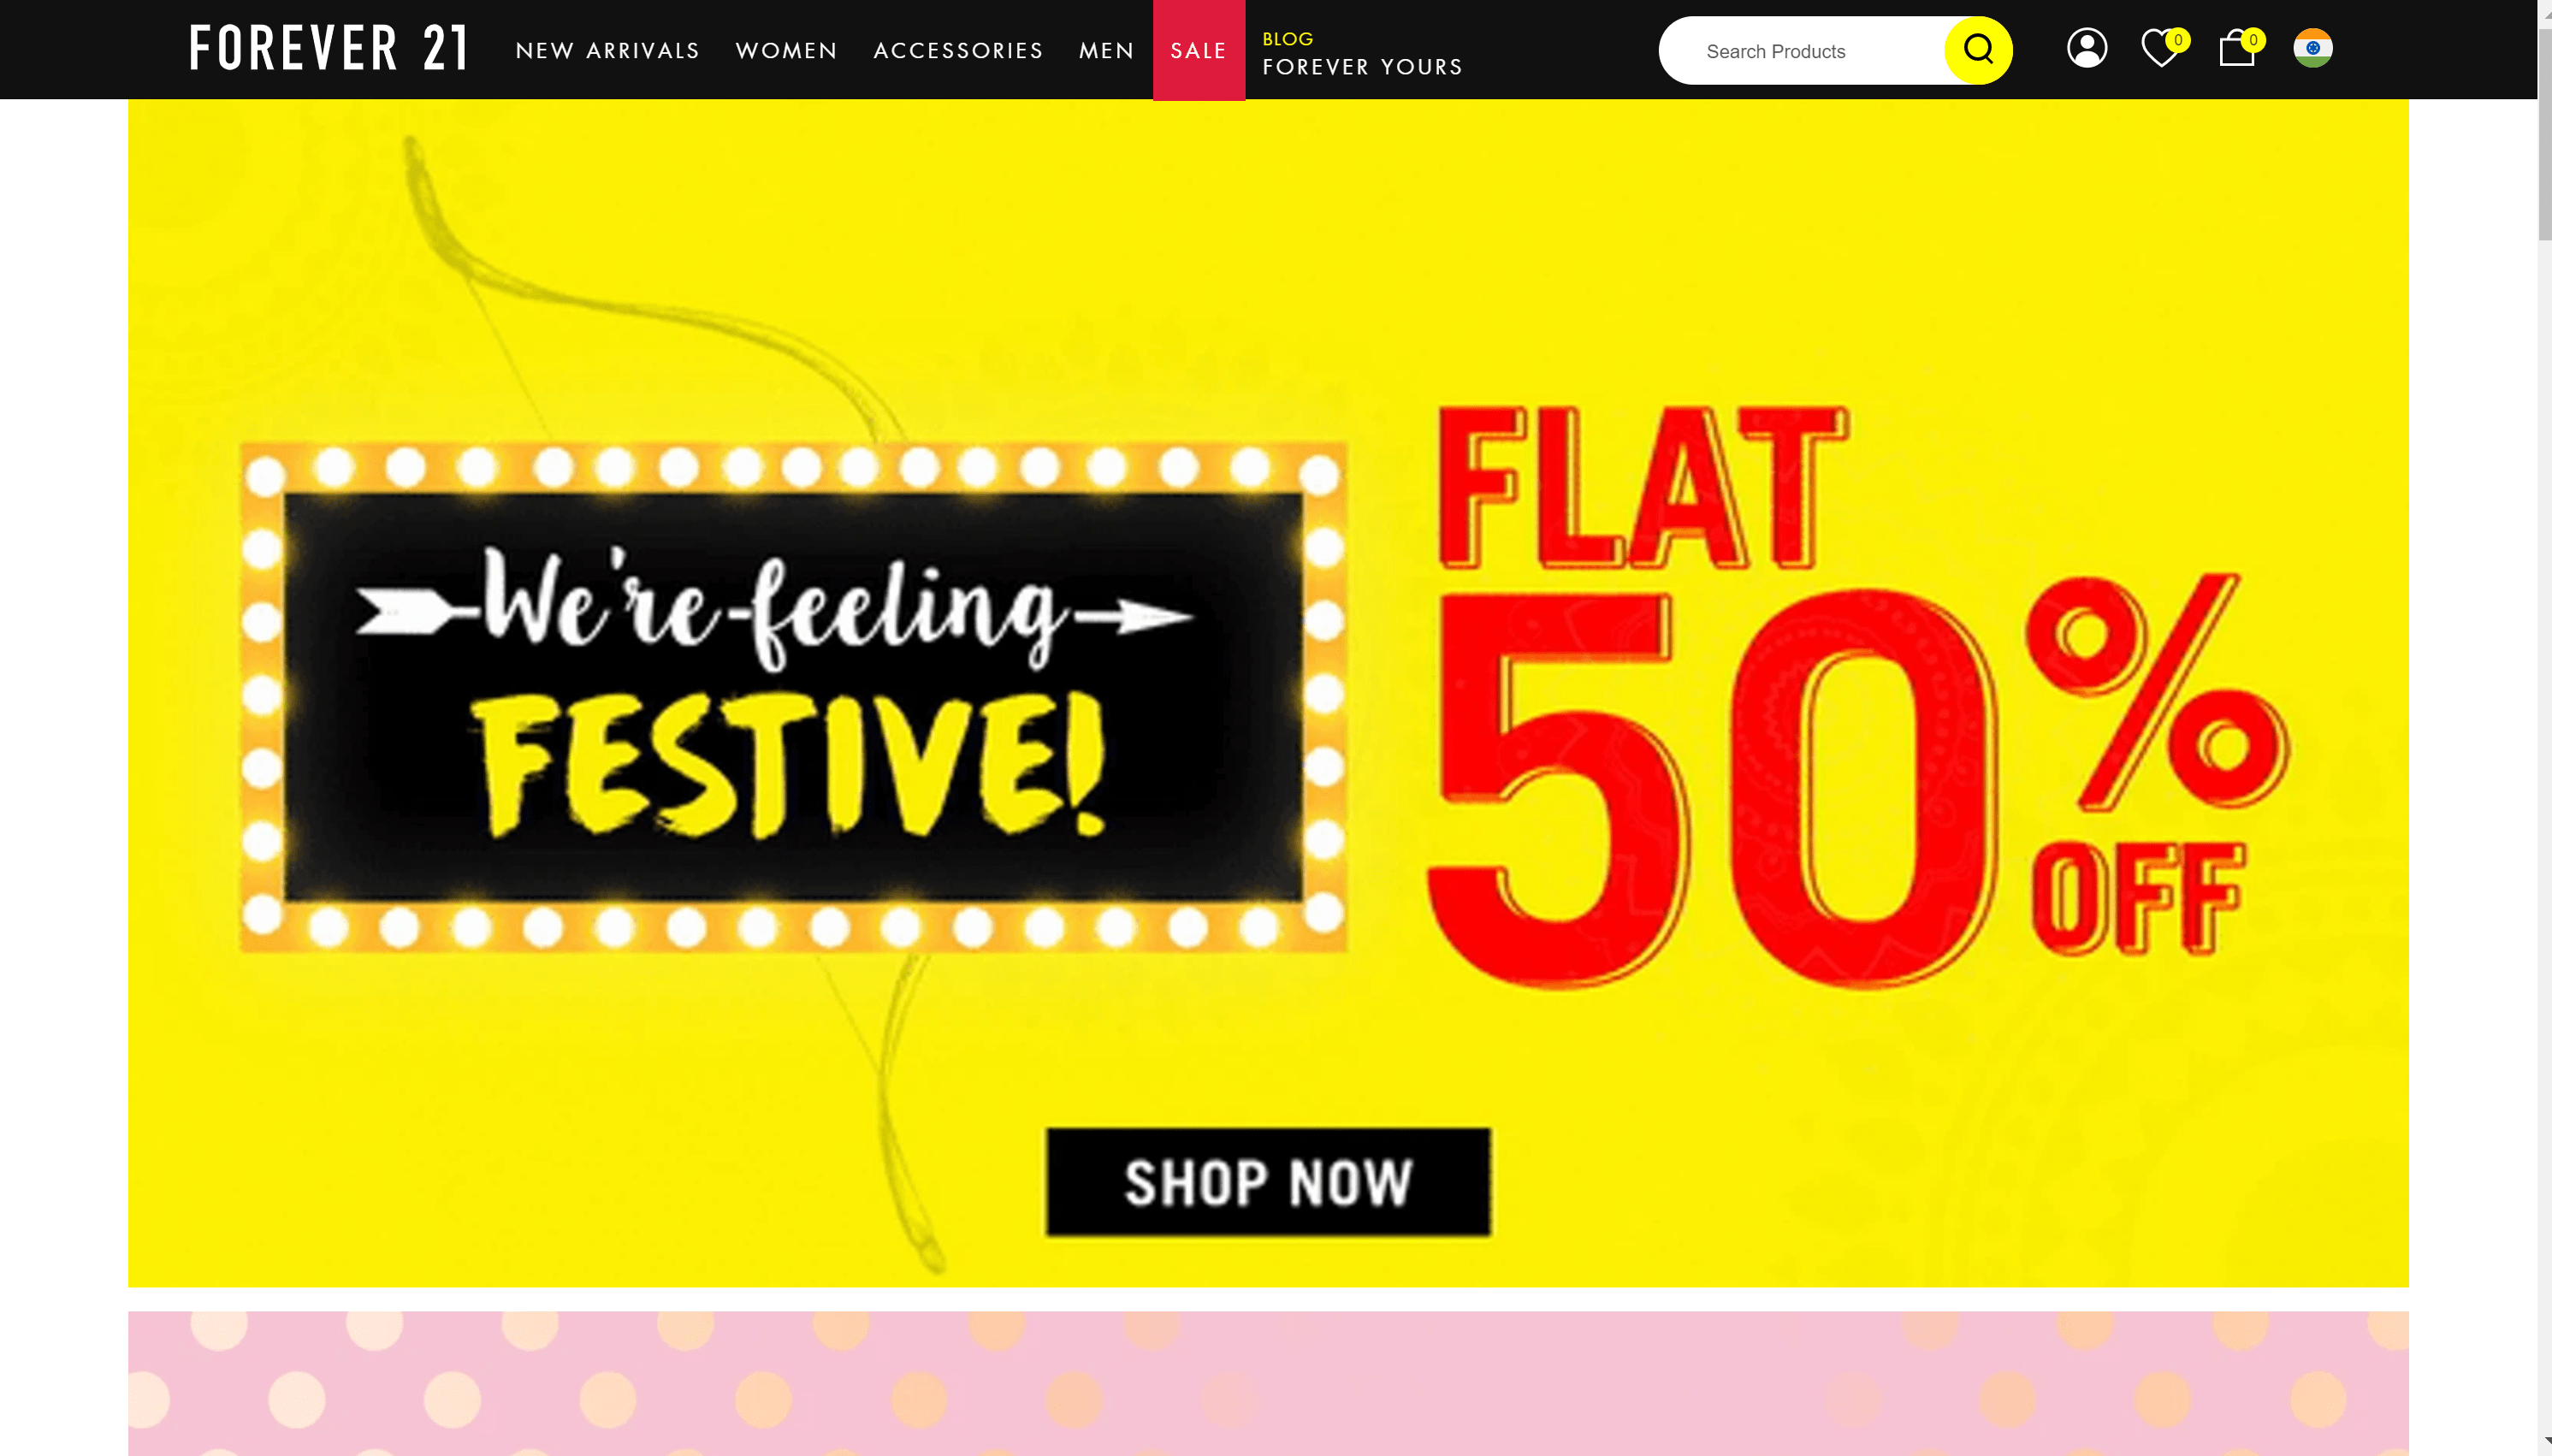 Forever21 Sale India